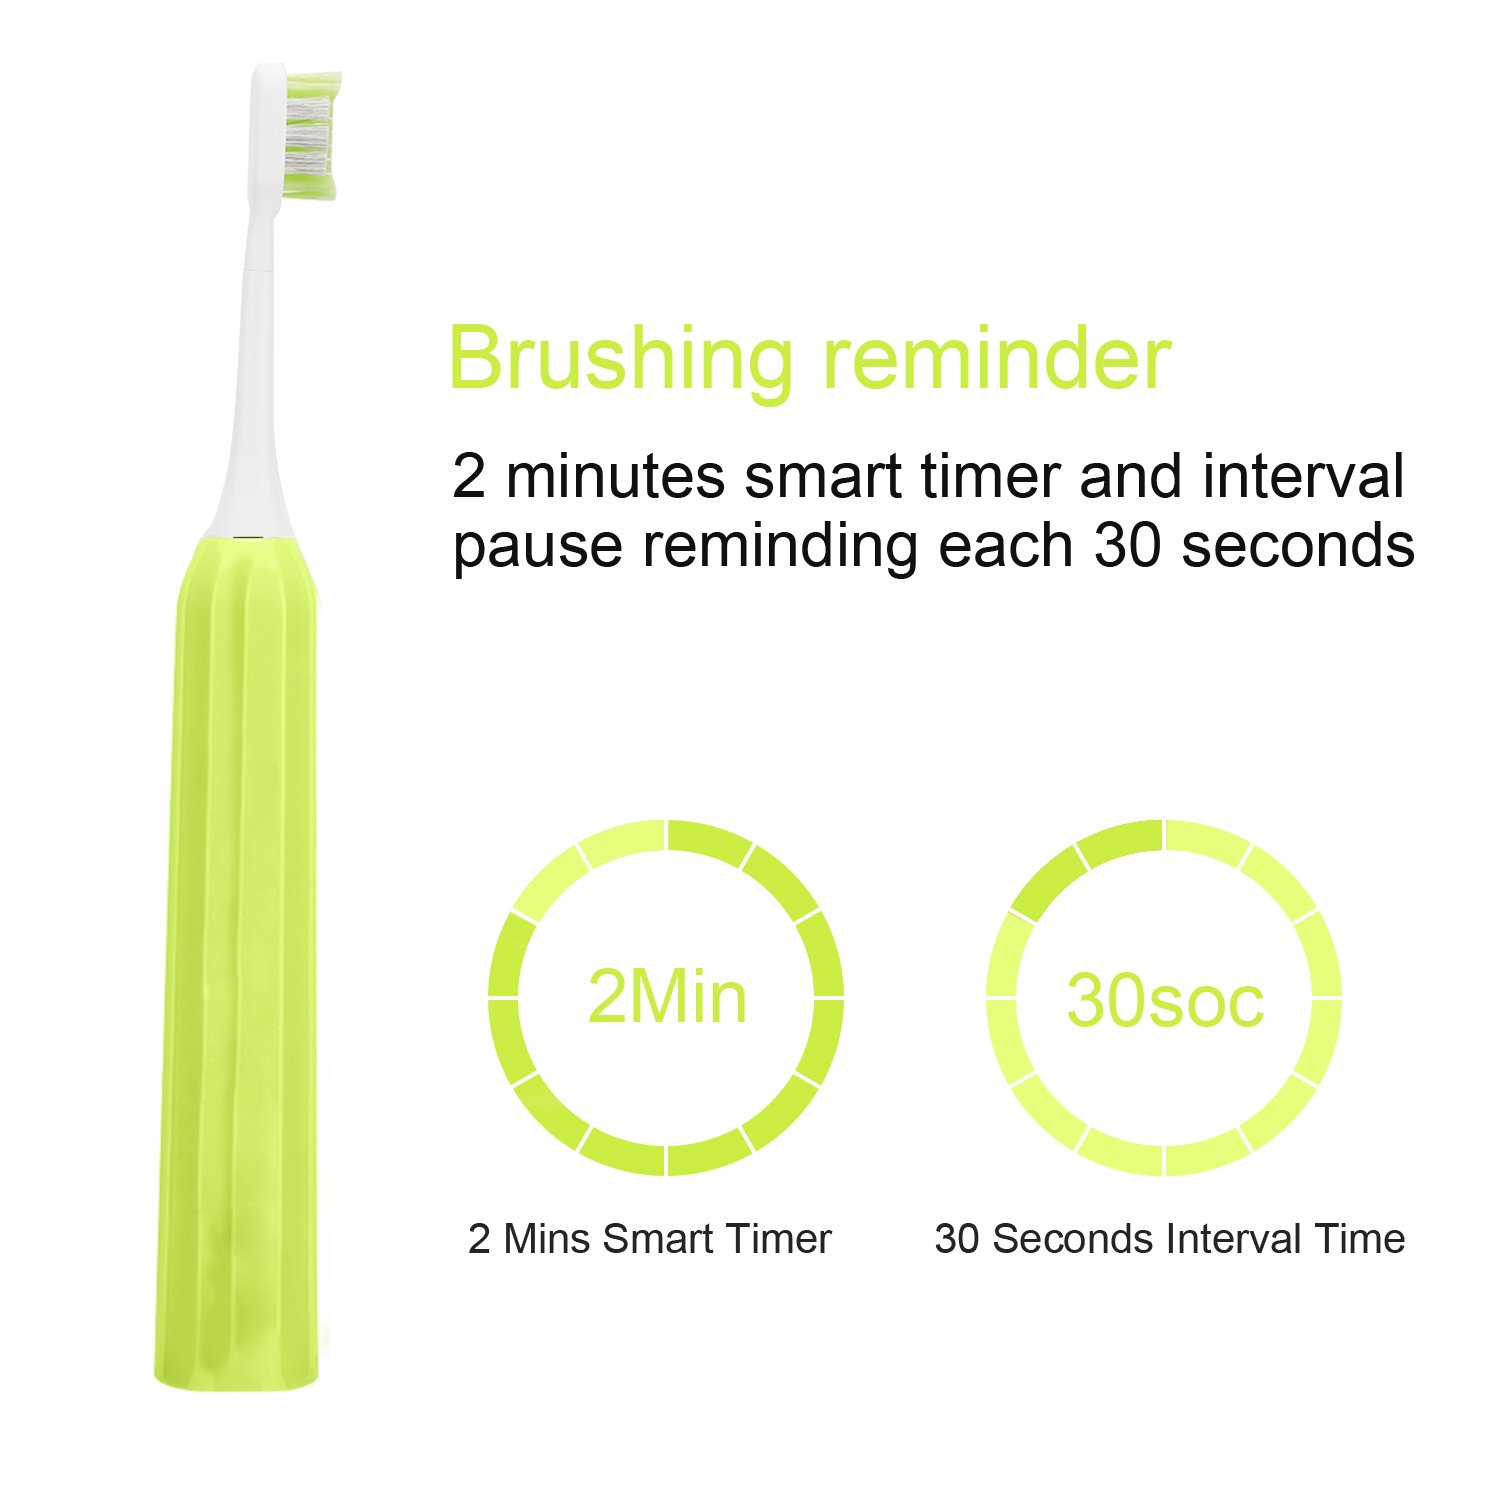 Rechargeable Sonic Electric Toothbrush for Adults, 5 Modes USB Toothbrush Up to 100 Days Battery Life with 3 Replacement Heads, IPX7 Fully Waterproof by Rlway RL-1318 Green